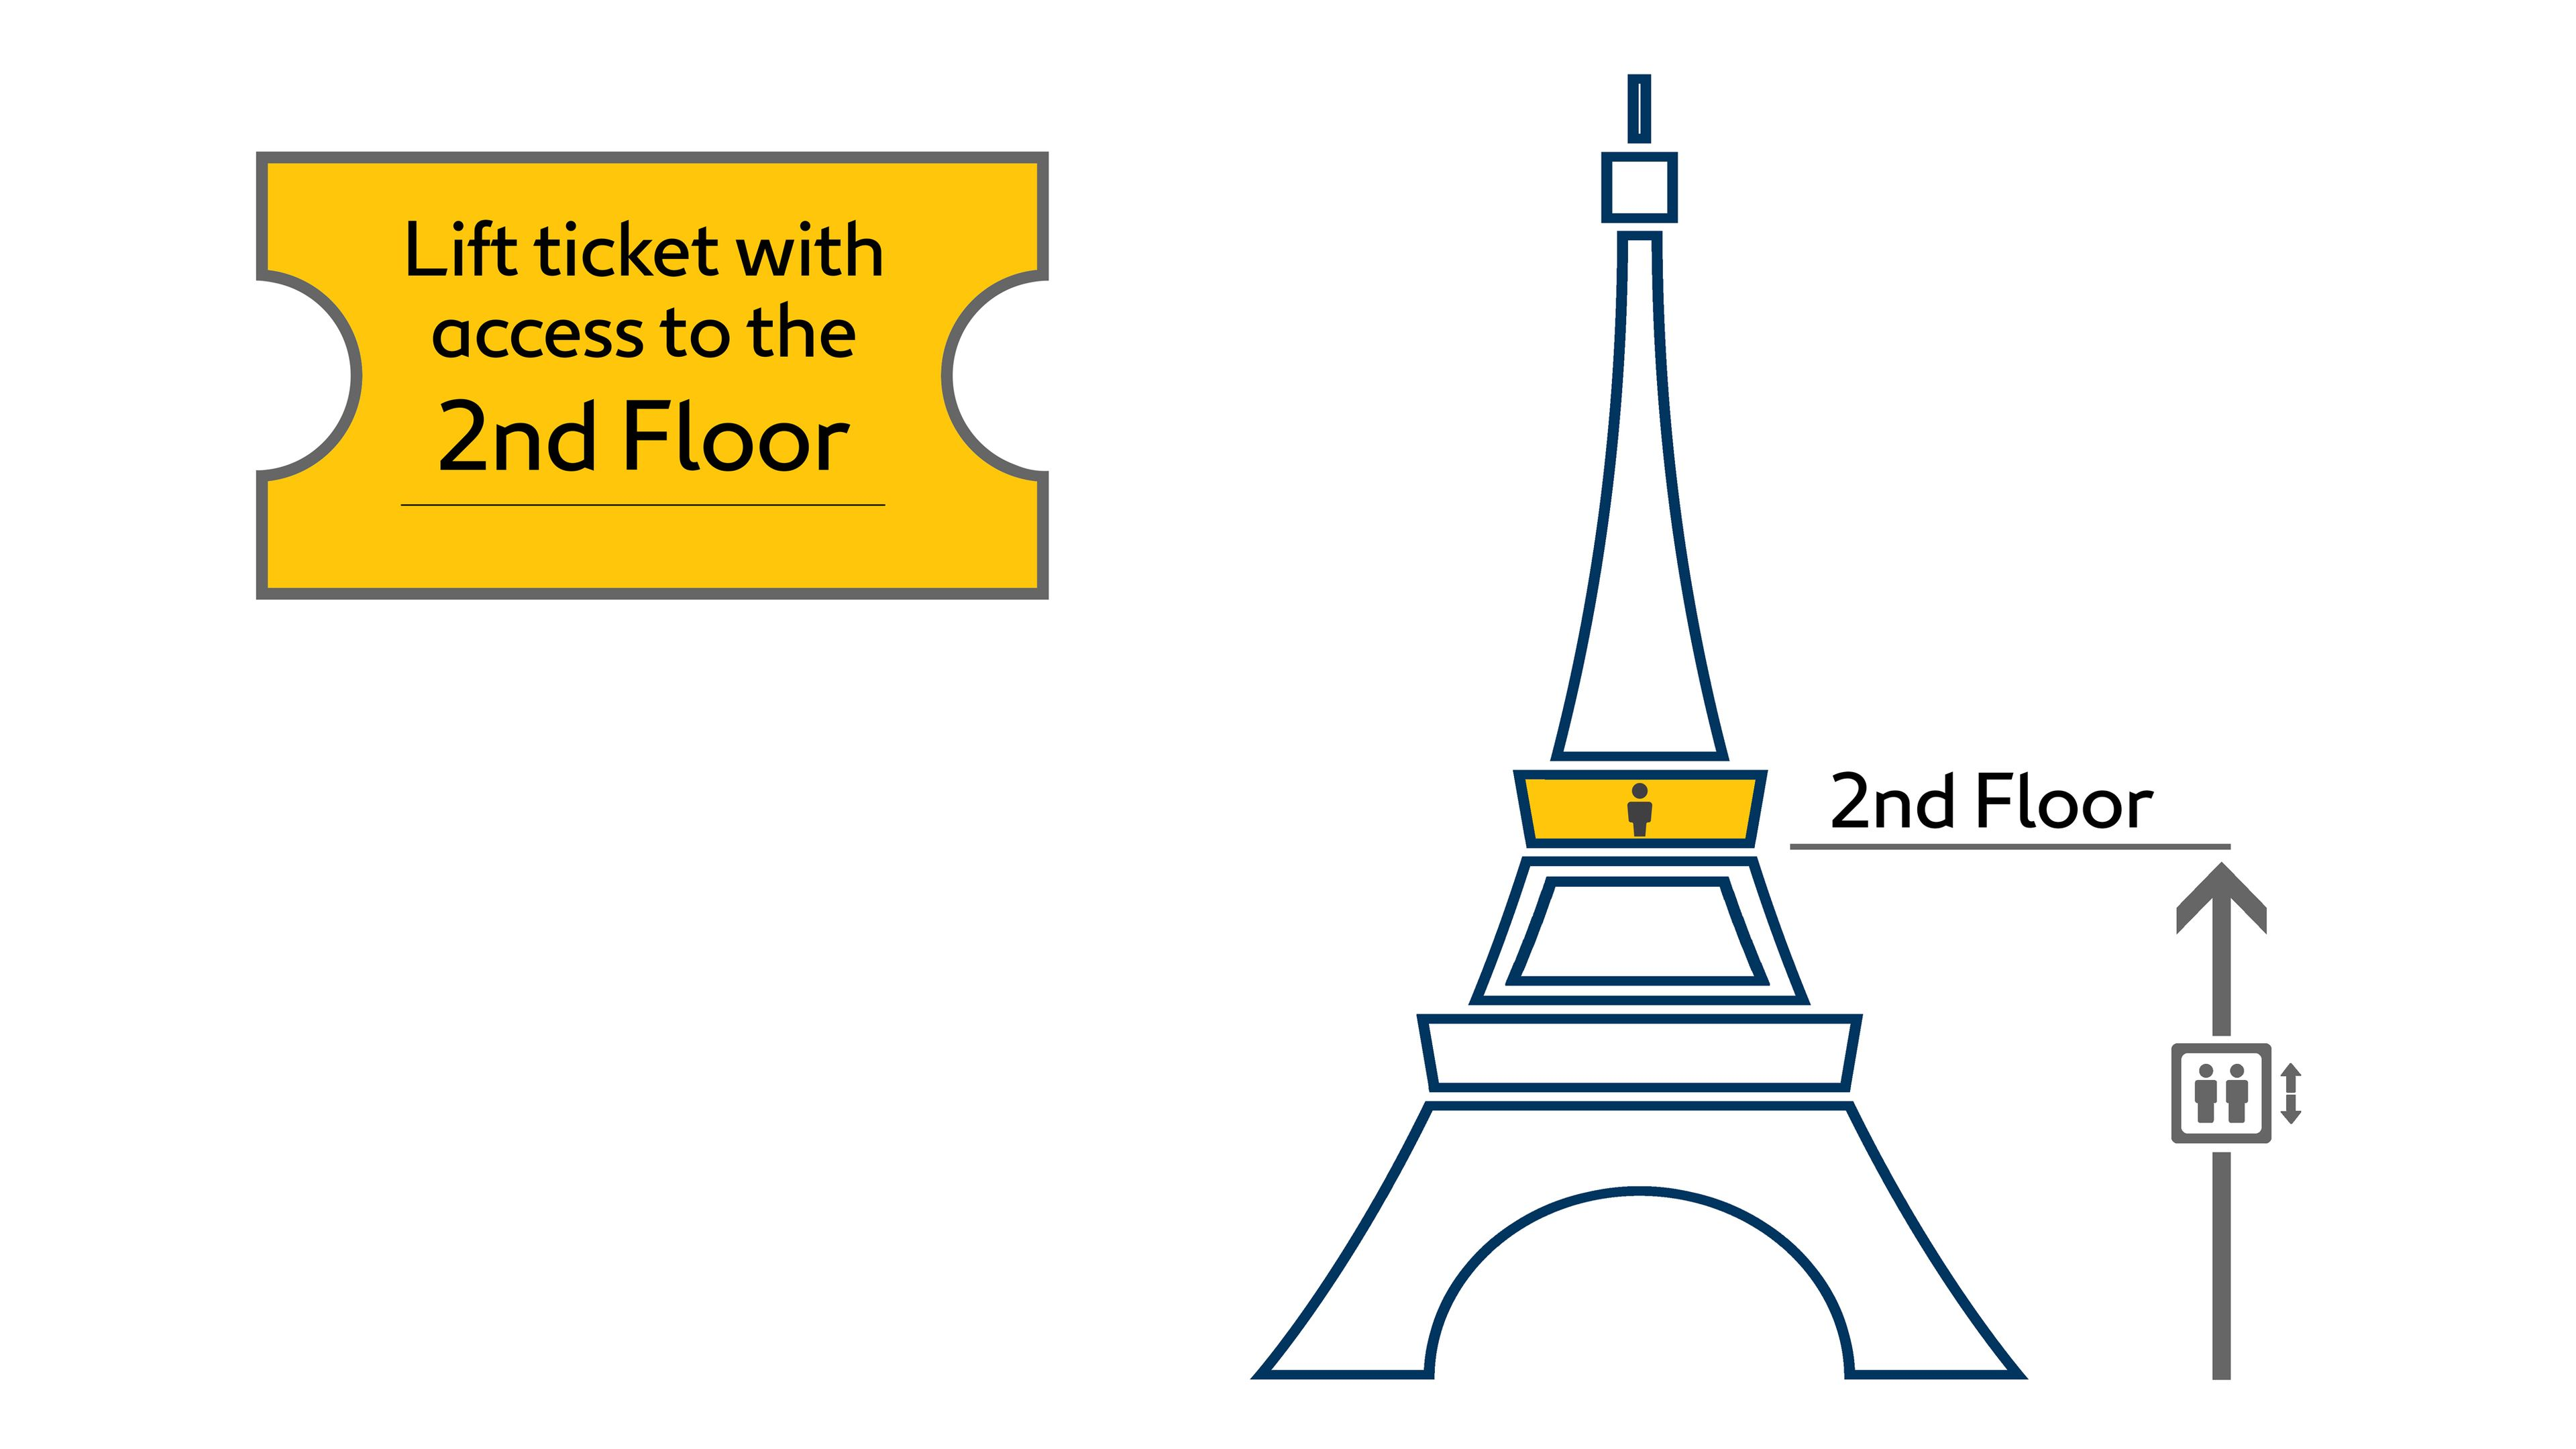 Graphic depicting ticket access to 2nd floor of the Eiffel Tower in Paris